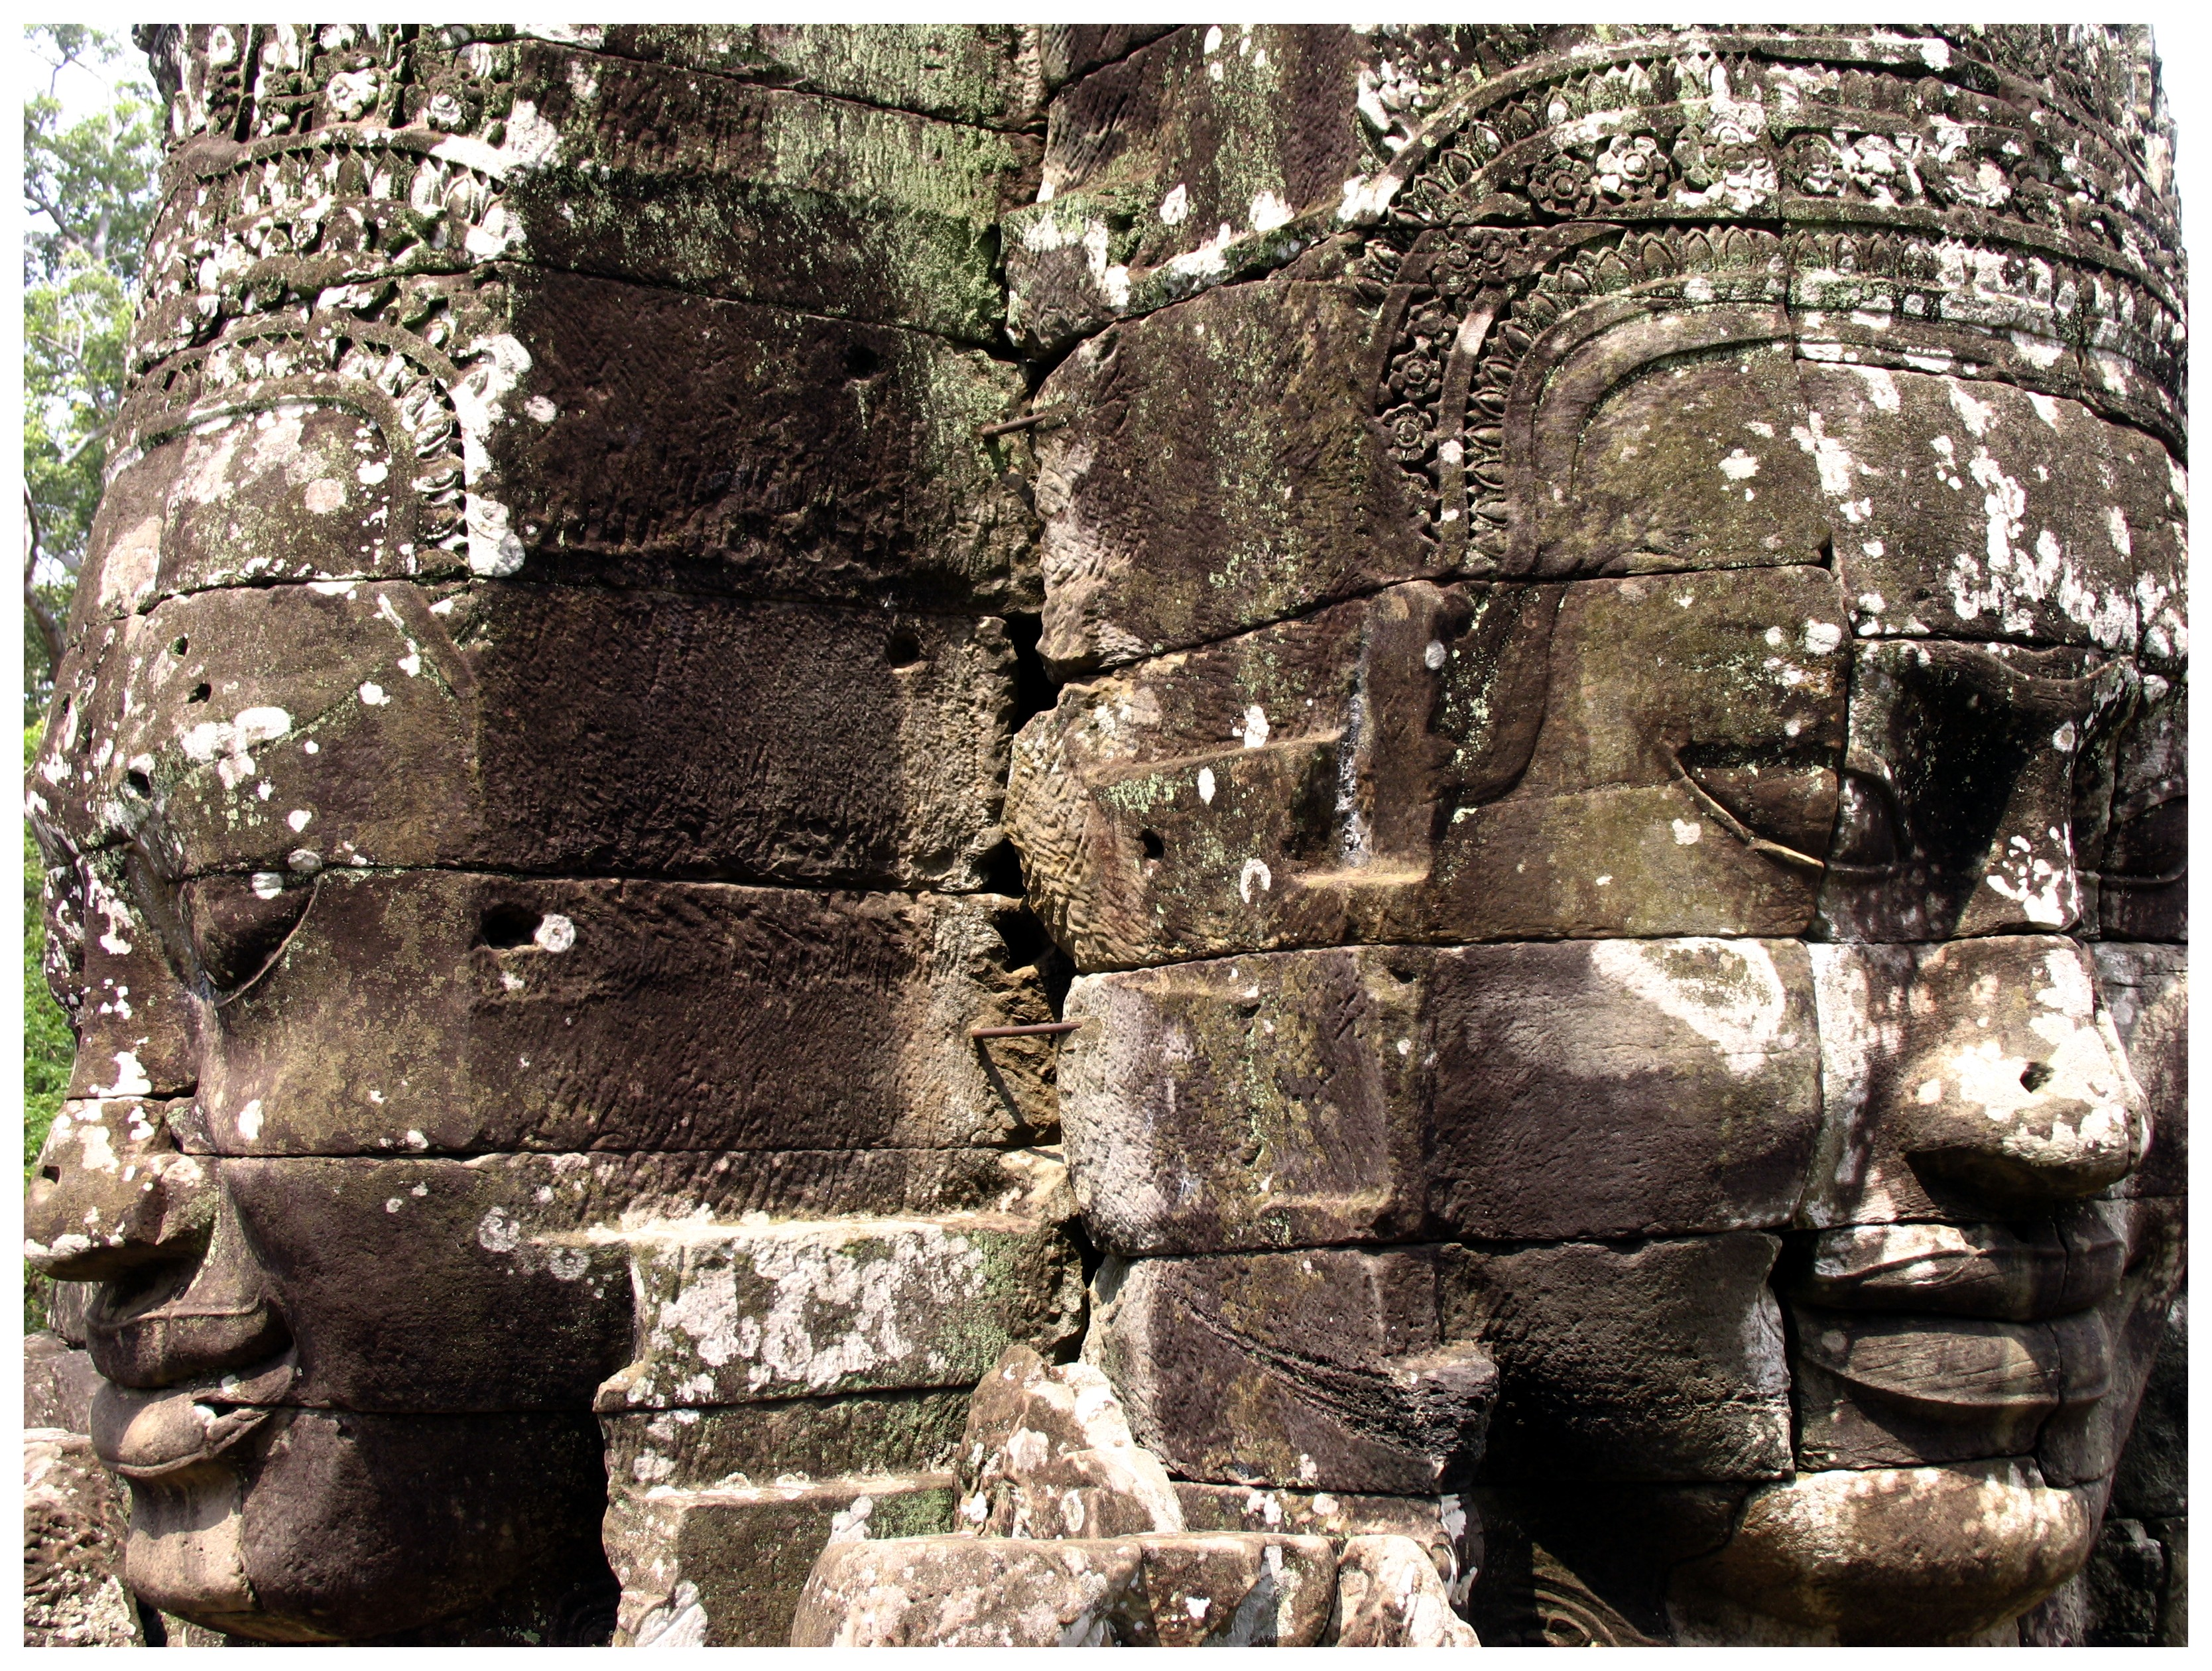 angkorwat_day2 144e